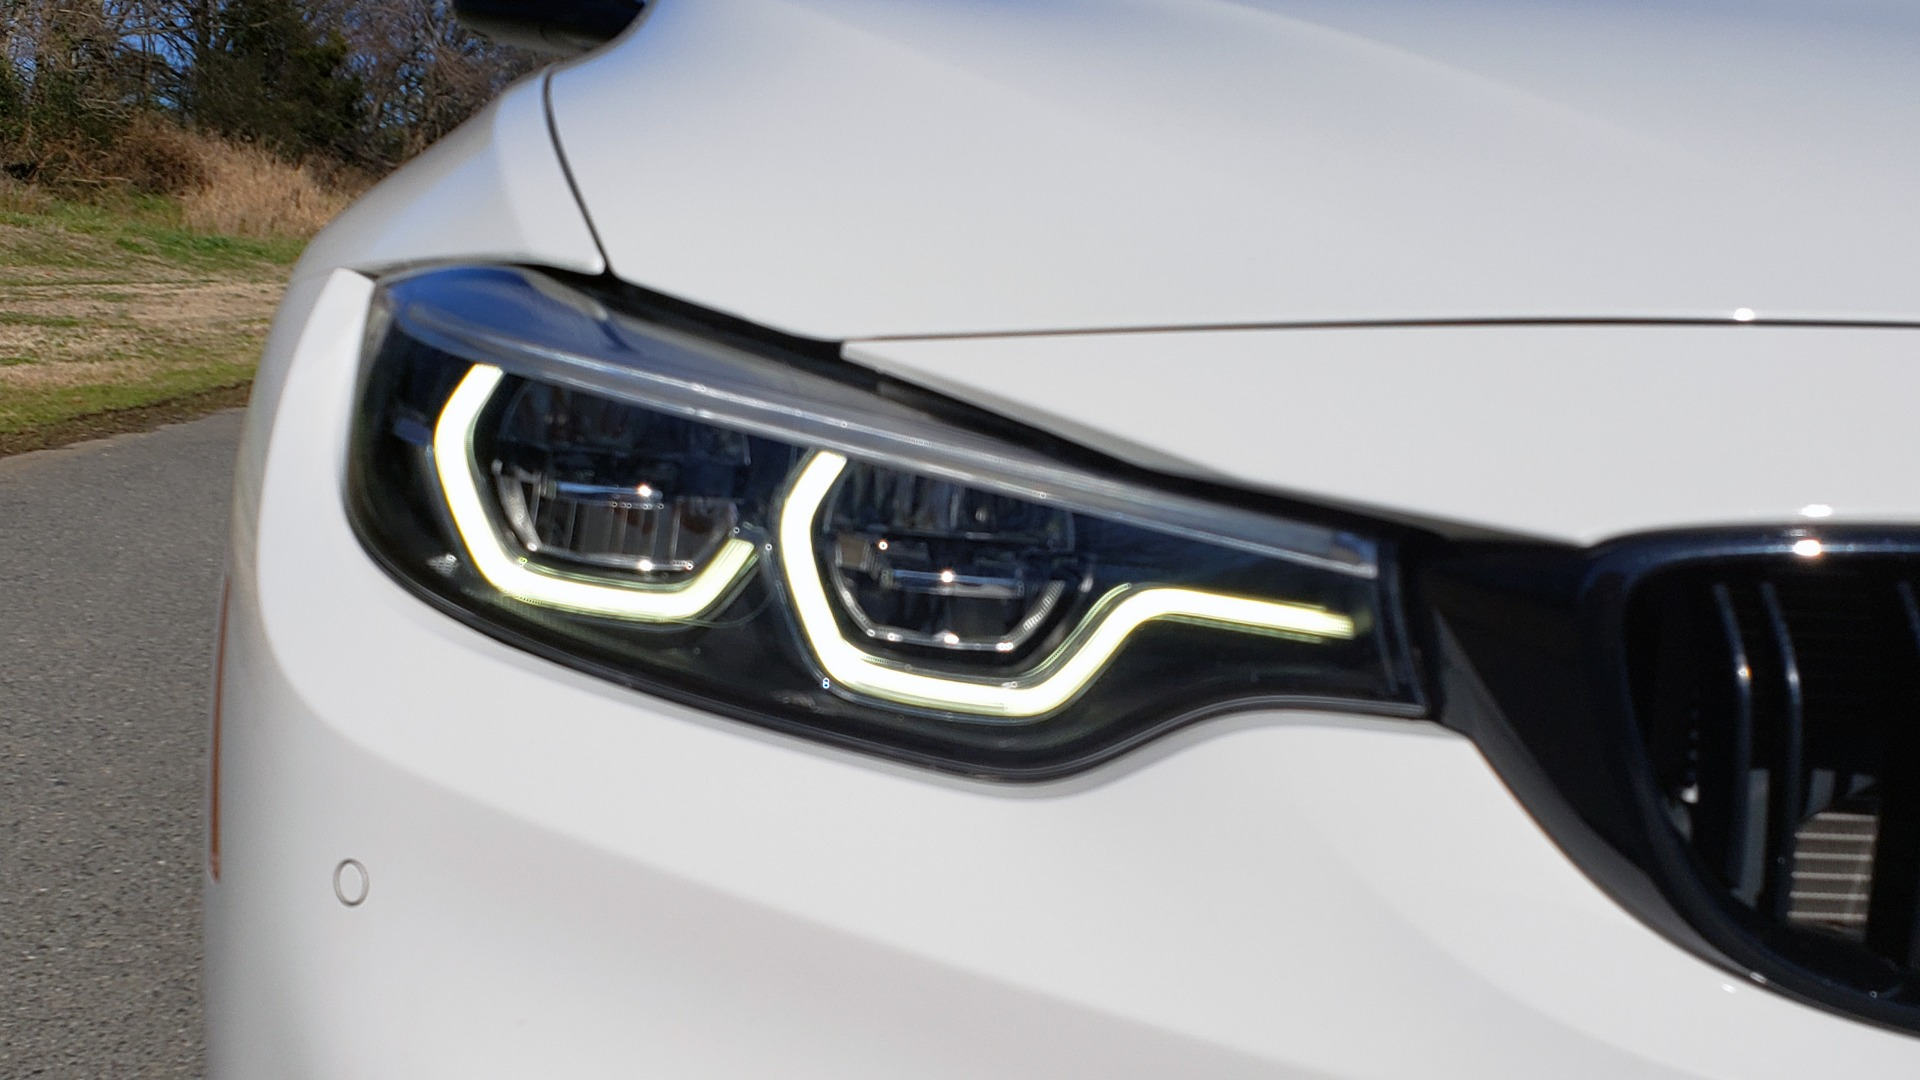 Used 2018 BMW M4 COMP PKG / EXEC / M-DRIVER / PARK CNTRL / ACTIVE BLIND SPOT for sale Sold at Formula Imports in Charlotte NC 28227 13